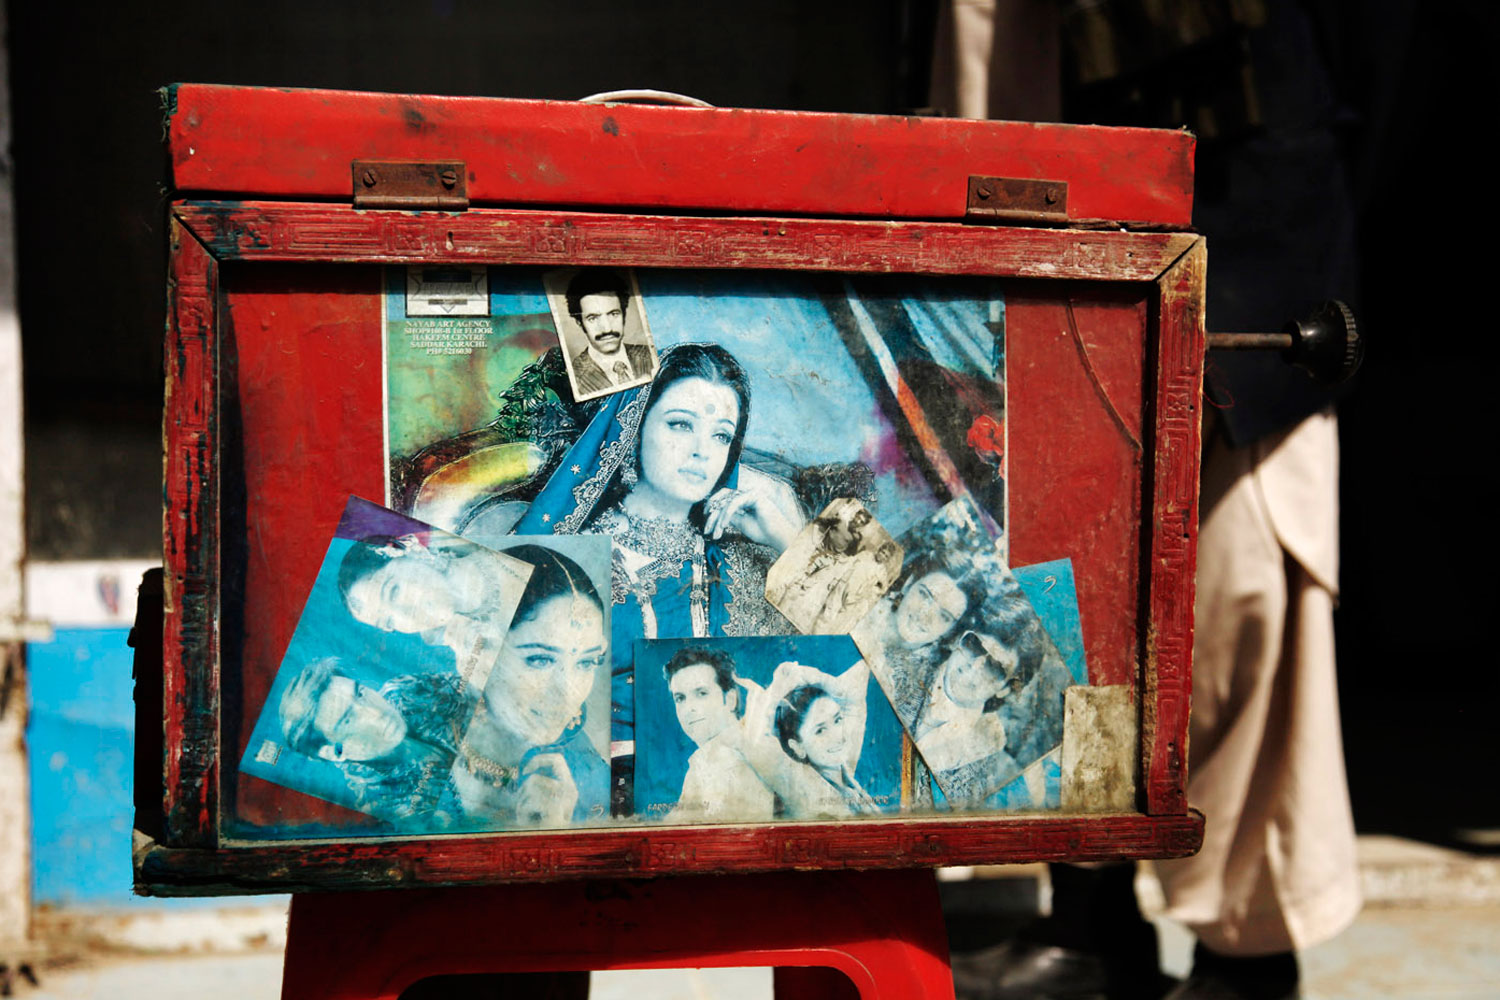 Images decorate Baba Sher's camera. Most are of Hindi movie stars.